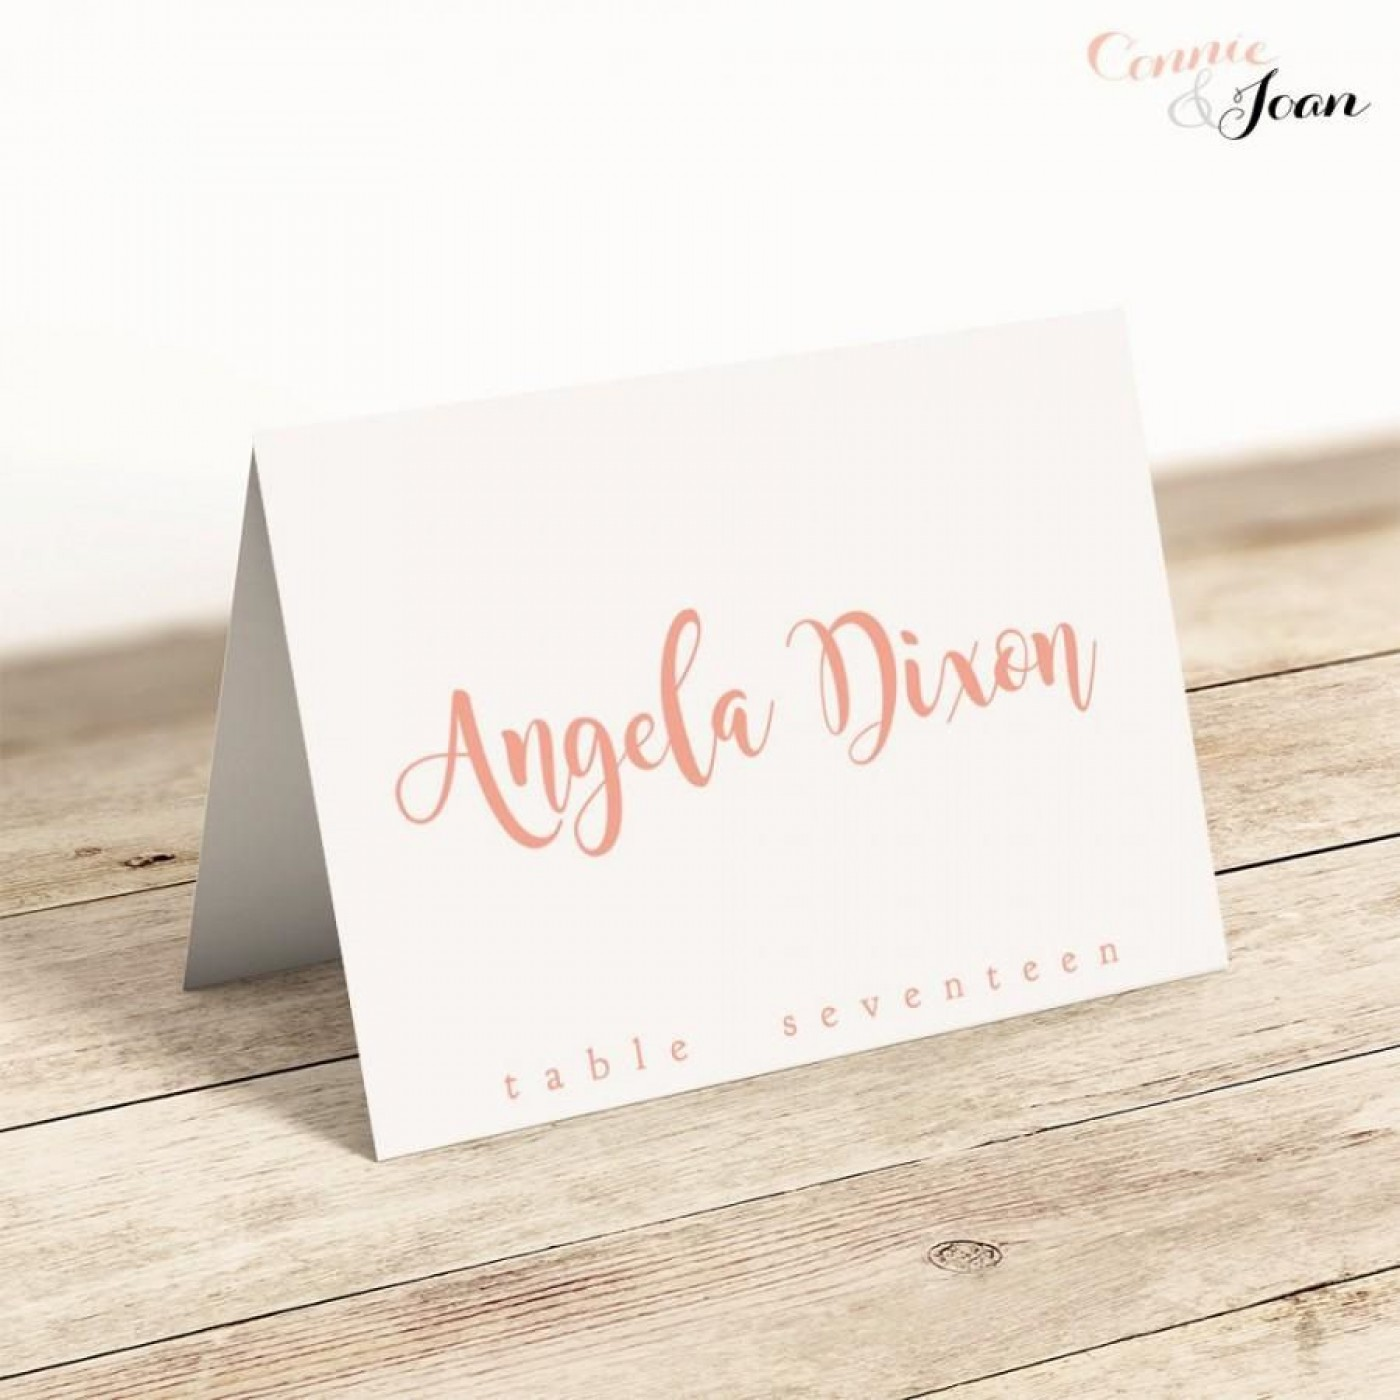 008 Archaicawful Wedding Name Card Template Design  Seating Chart Place Free1400